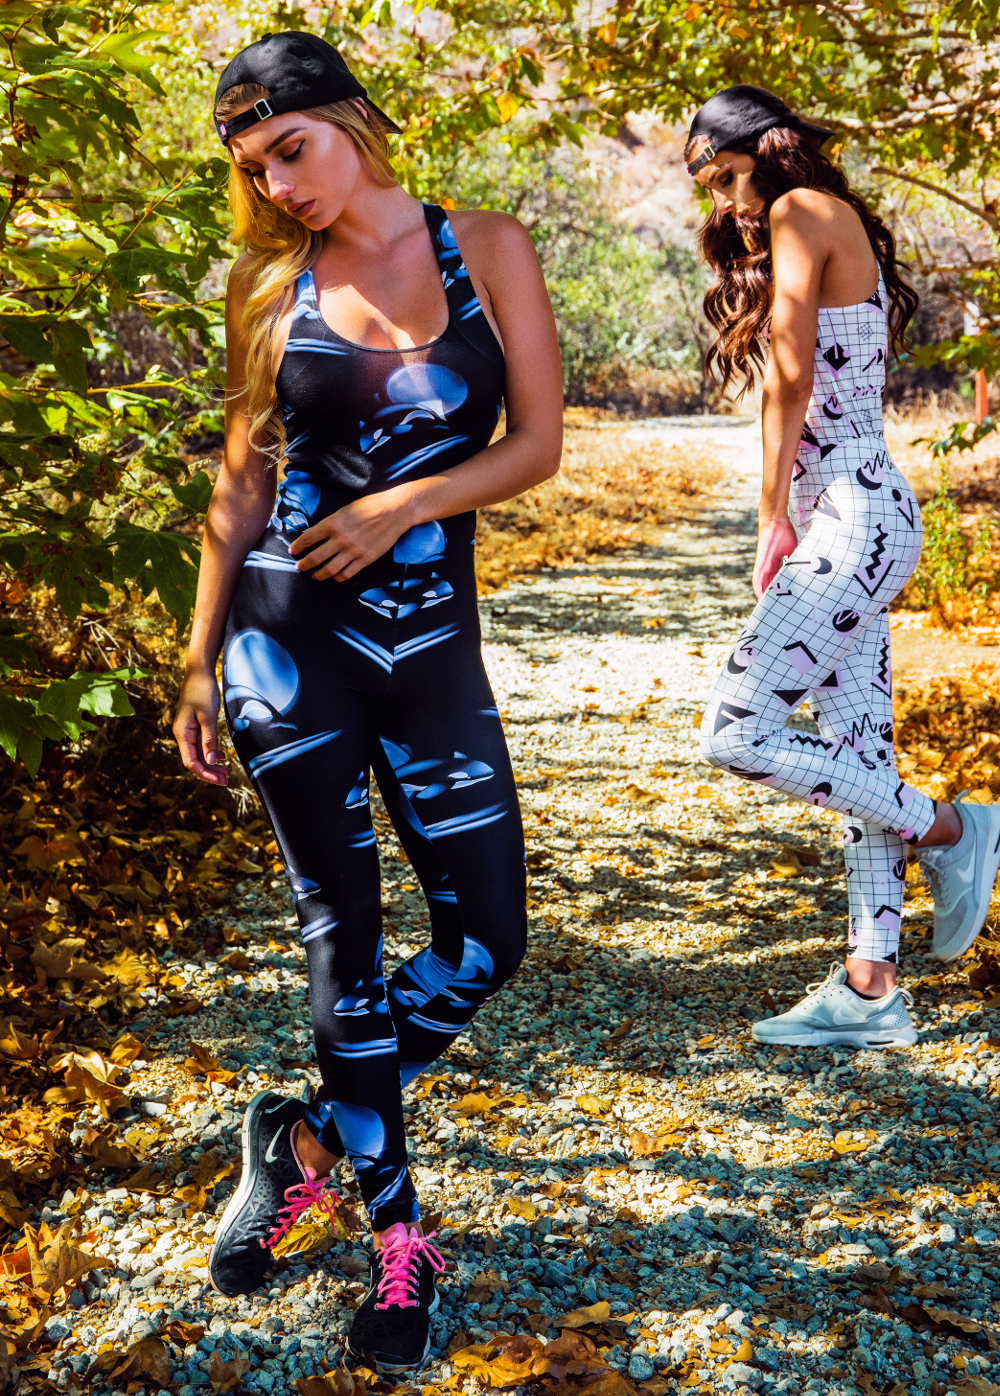 LEFT: MONDO LEGGINGS + RACERBACK/ RIGHT: ORCA LEGGINGS + RACERBACK